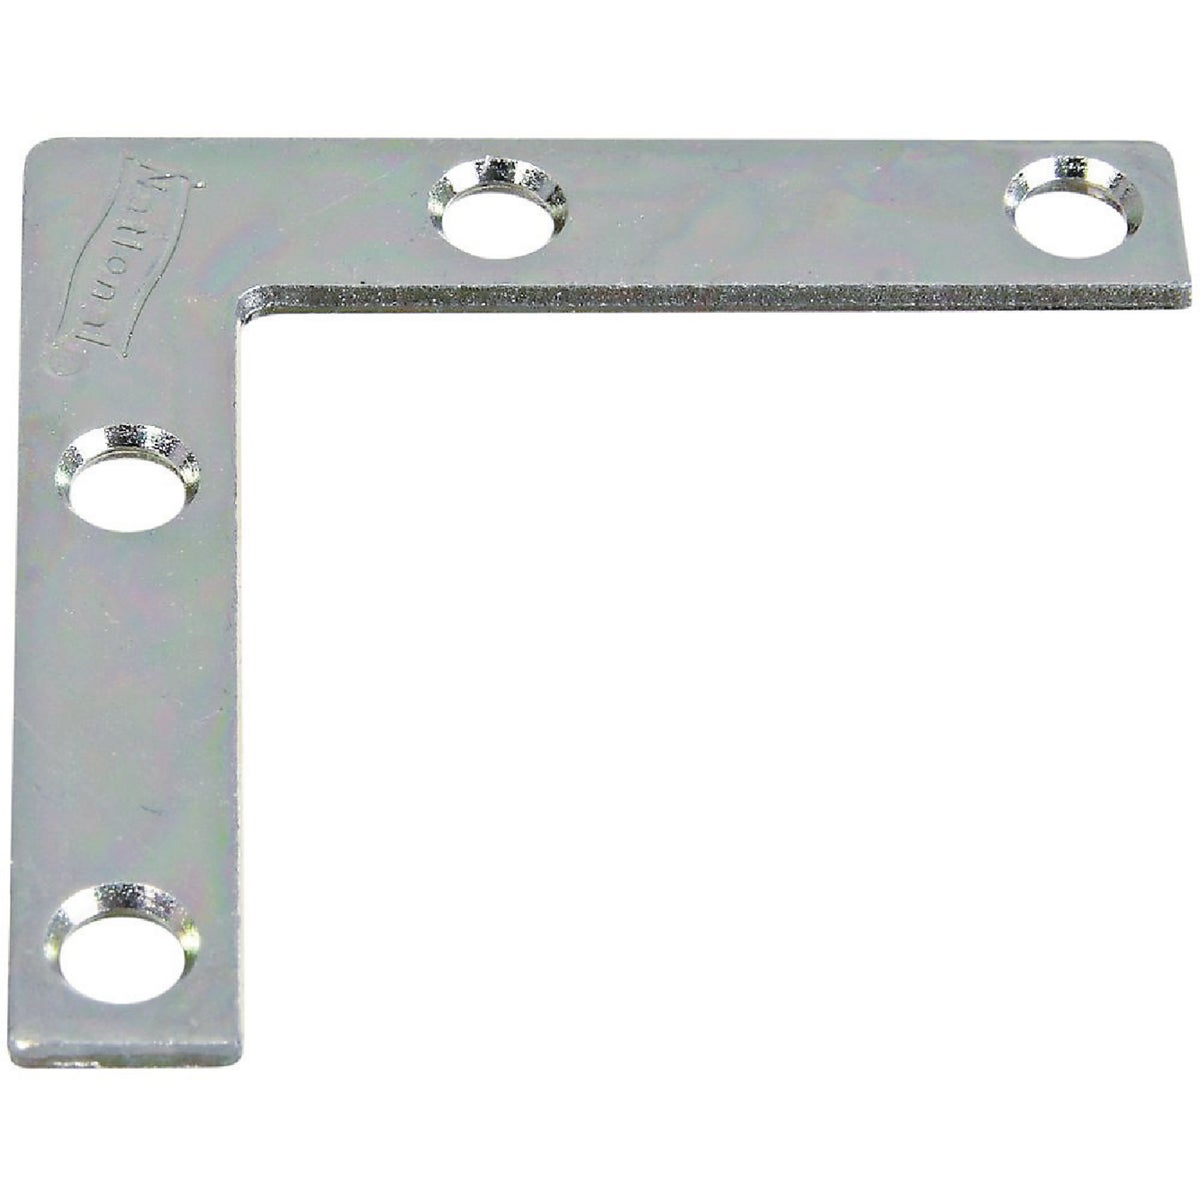 2X3/8 CORNER IRON - N113845 by National Mfg Co